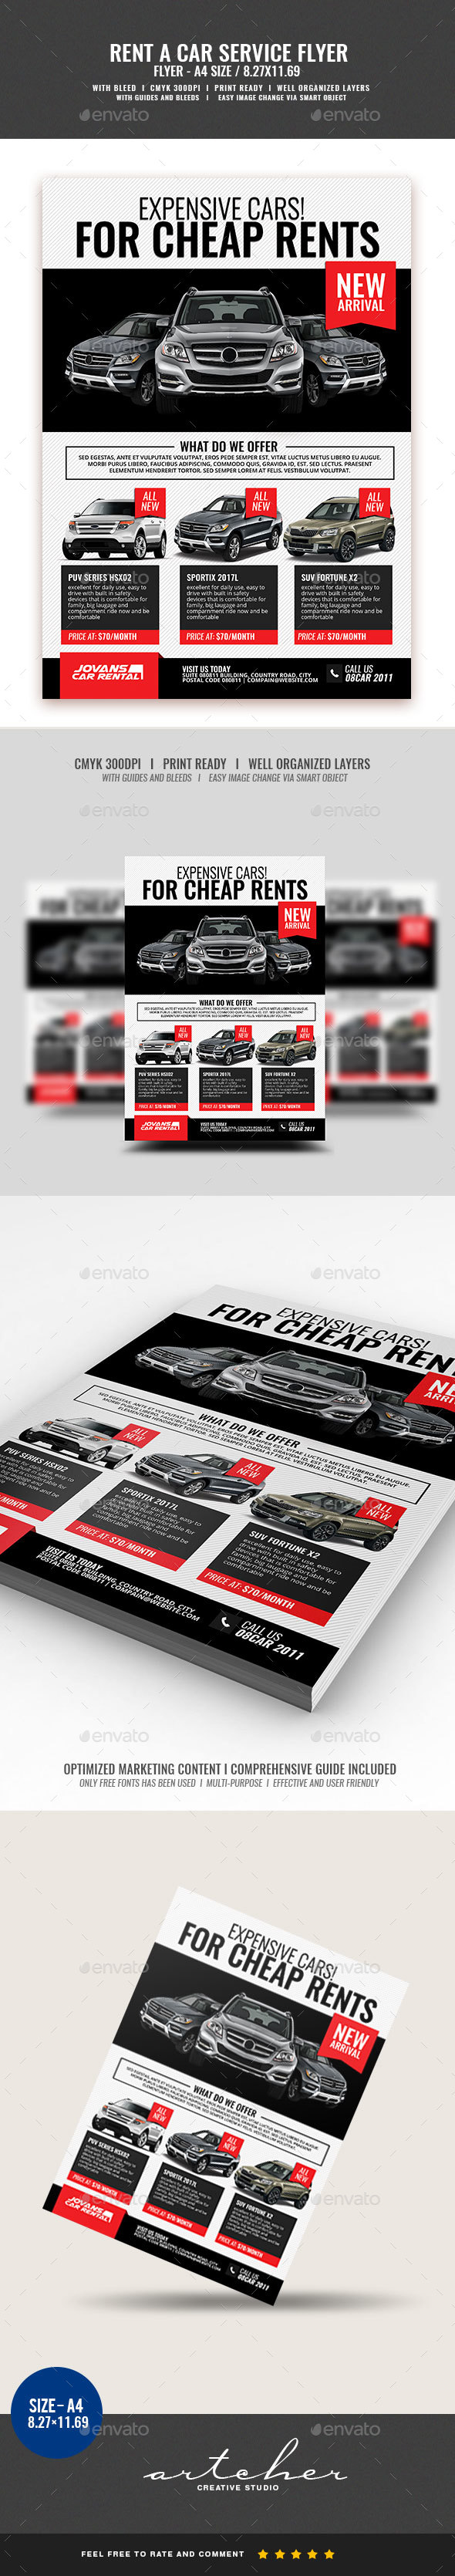 Car Rental and Dealership Flyer - Corporate Flyers